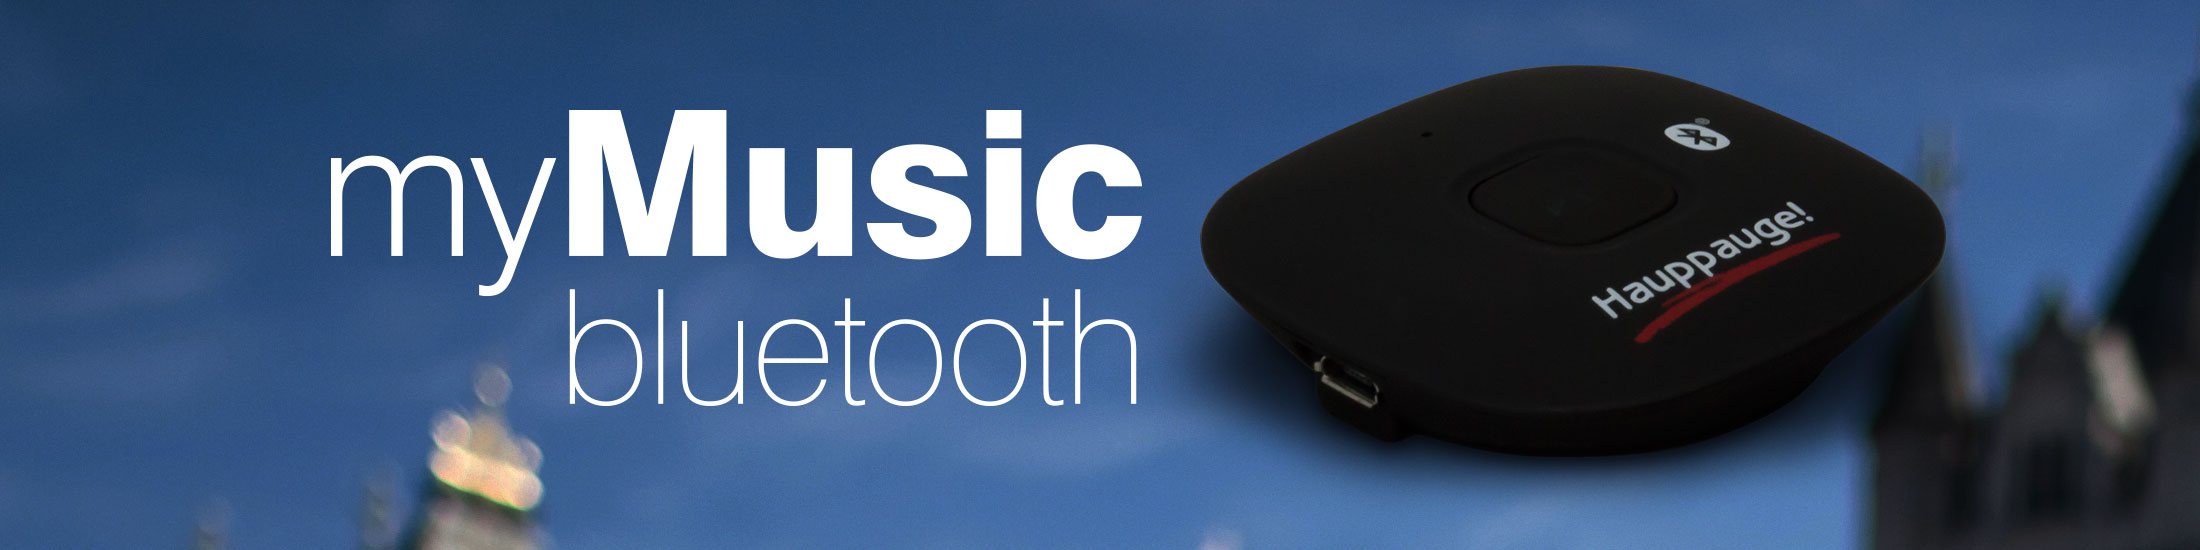 myMusic Bluetooth